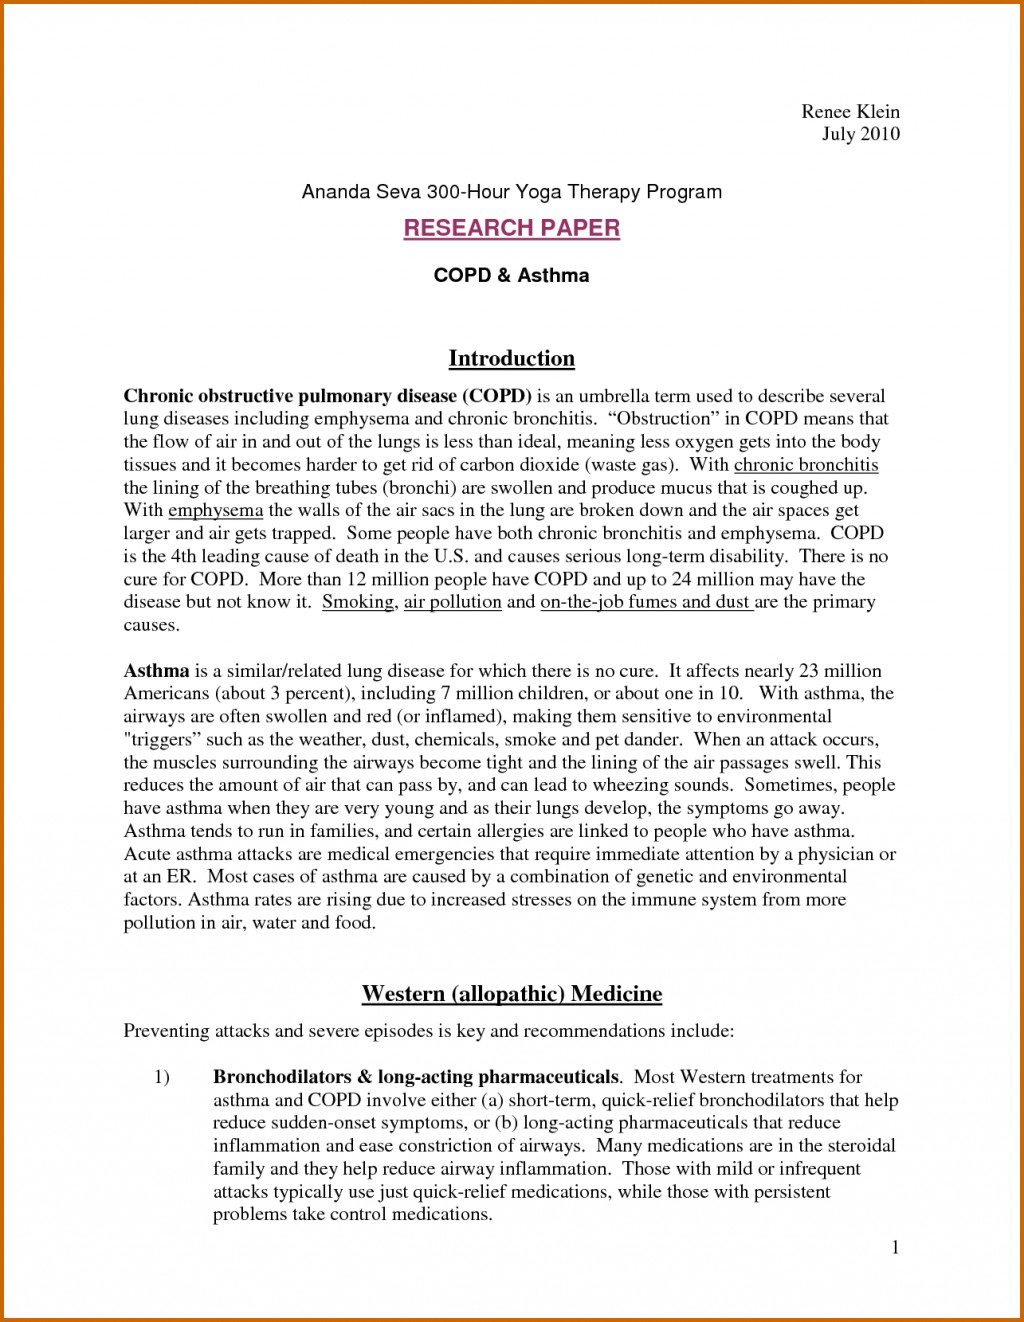 003 Introduction Samples For Researchs Shocking Research Papers Sample Paper About Bullying Writing Ppt Psychology Large